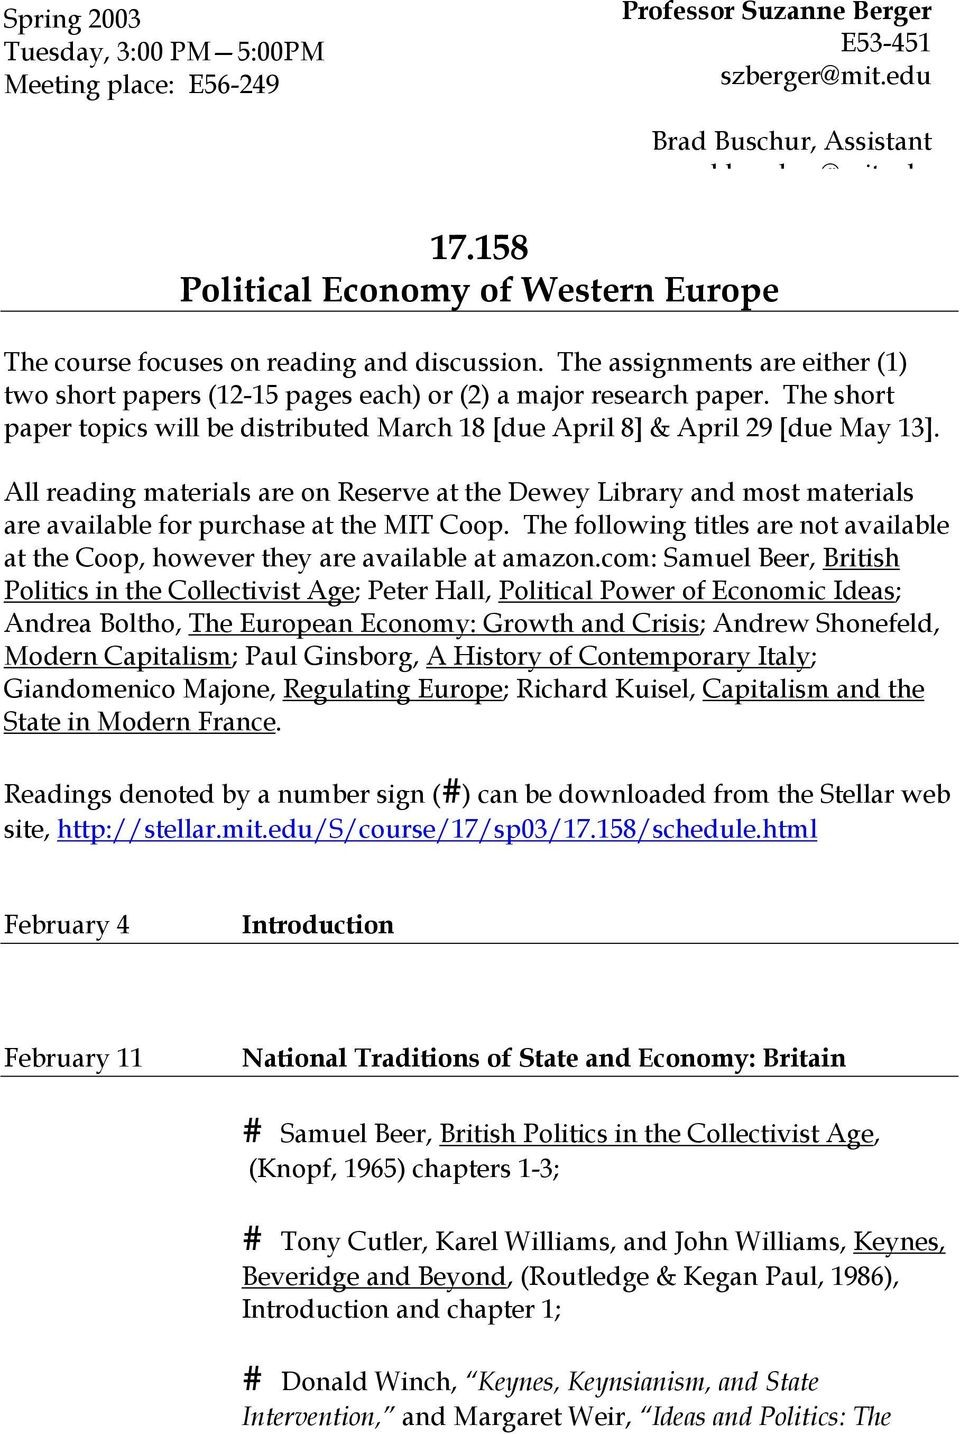 021 Research Paper Political Economy Topics Page 1 Awesome Global International 960